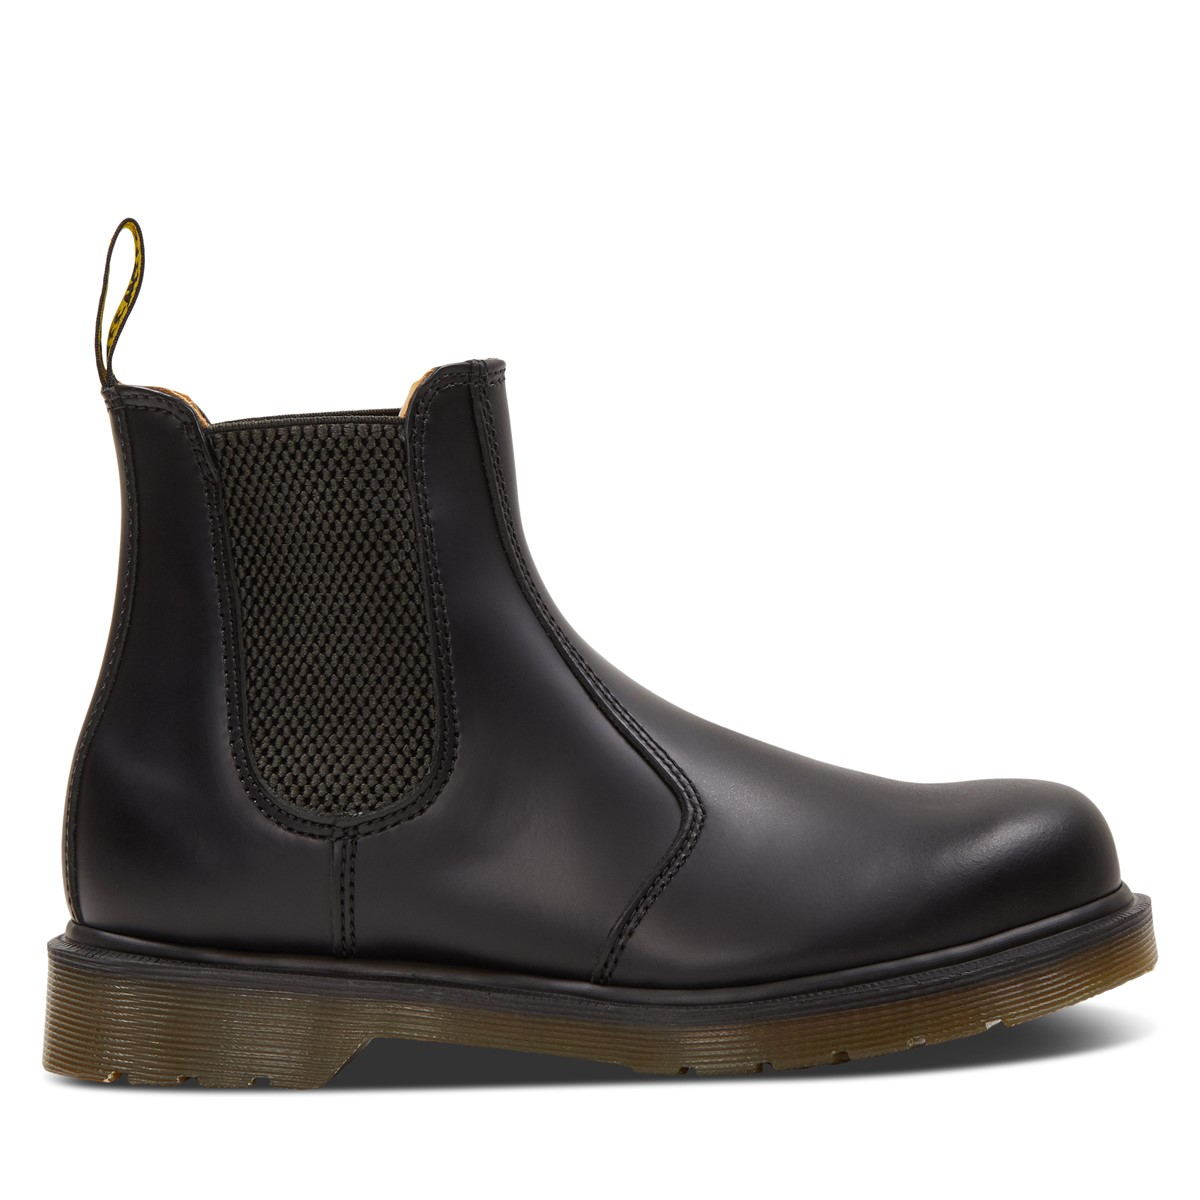 Women's 2976 Chelsea Boots in Black